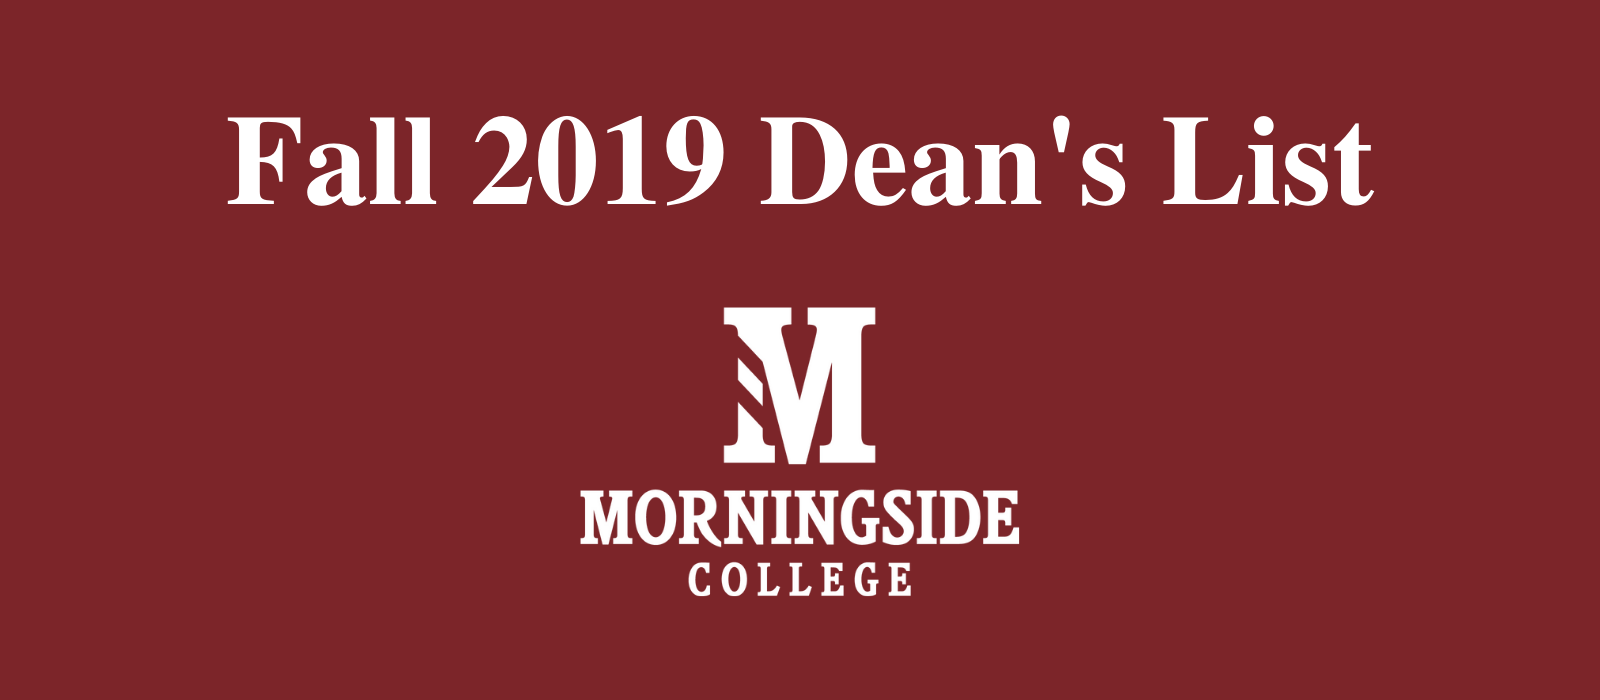 Cover image for the fall 2019 Dean's List press release